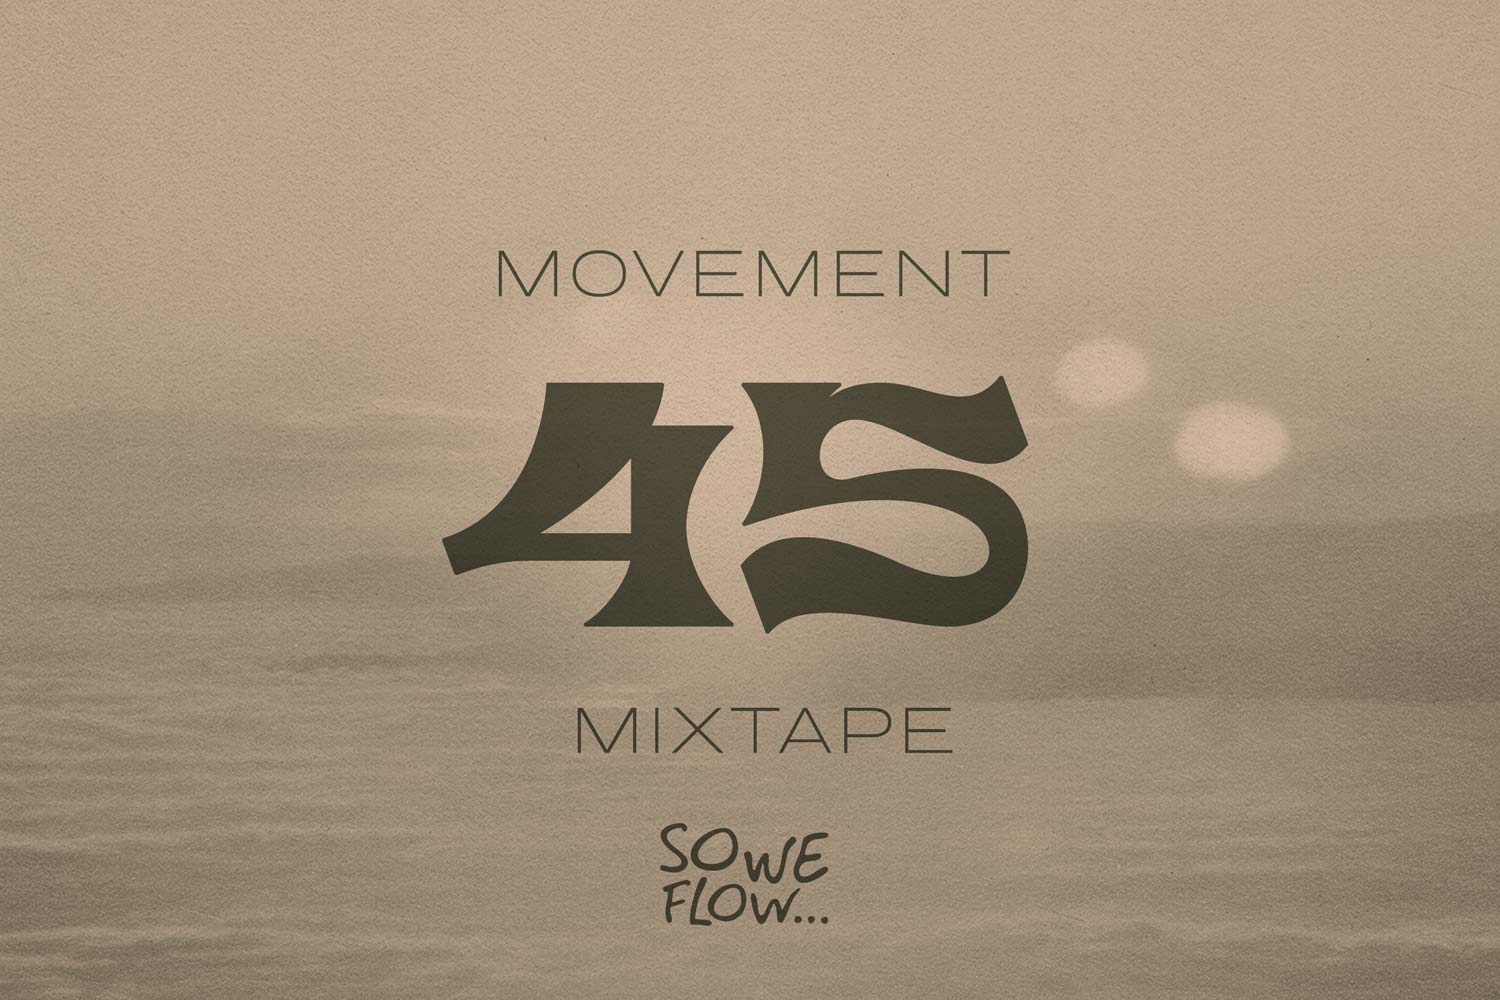 Movement Mixtape No.45